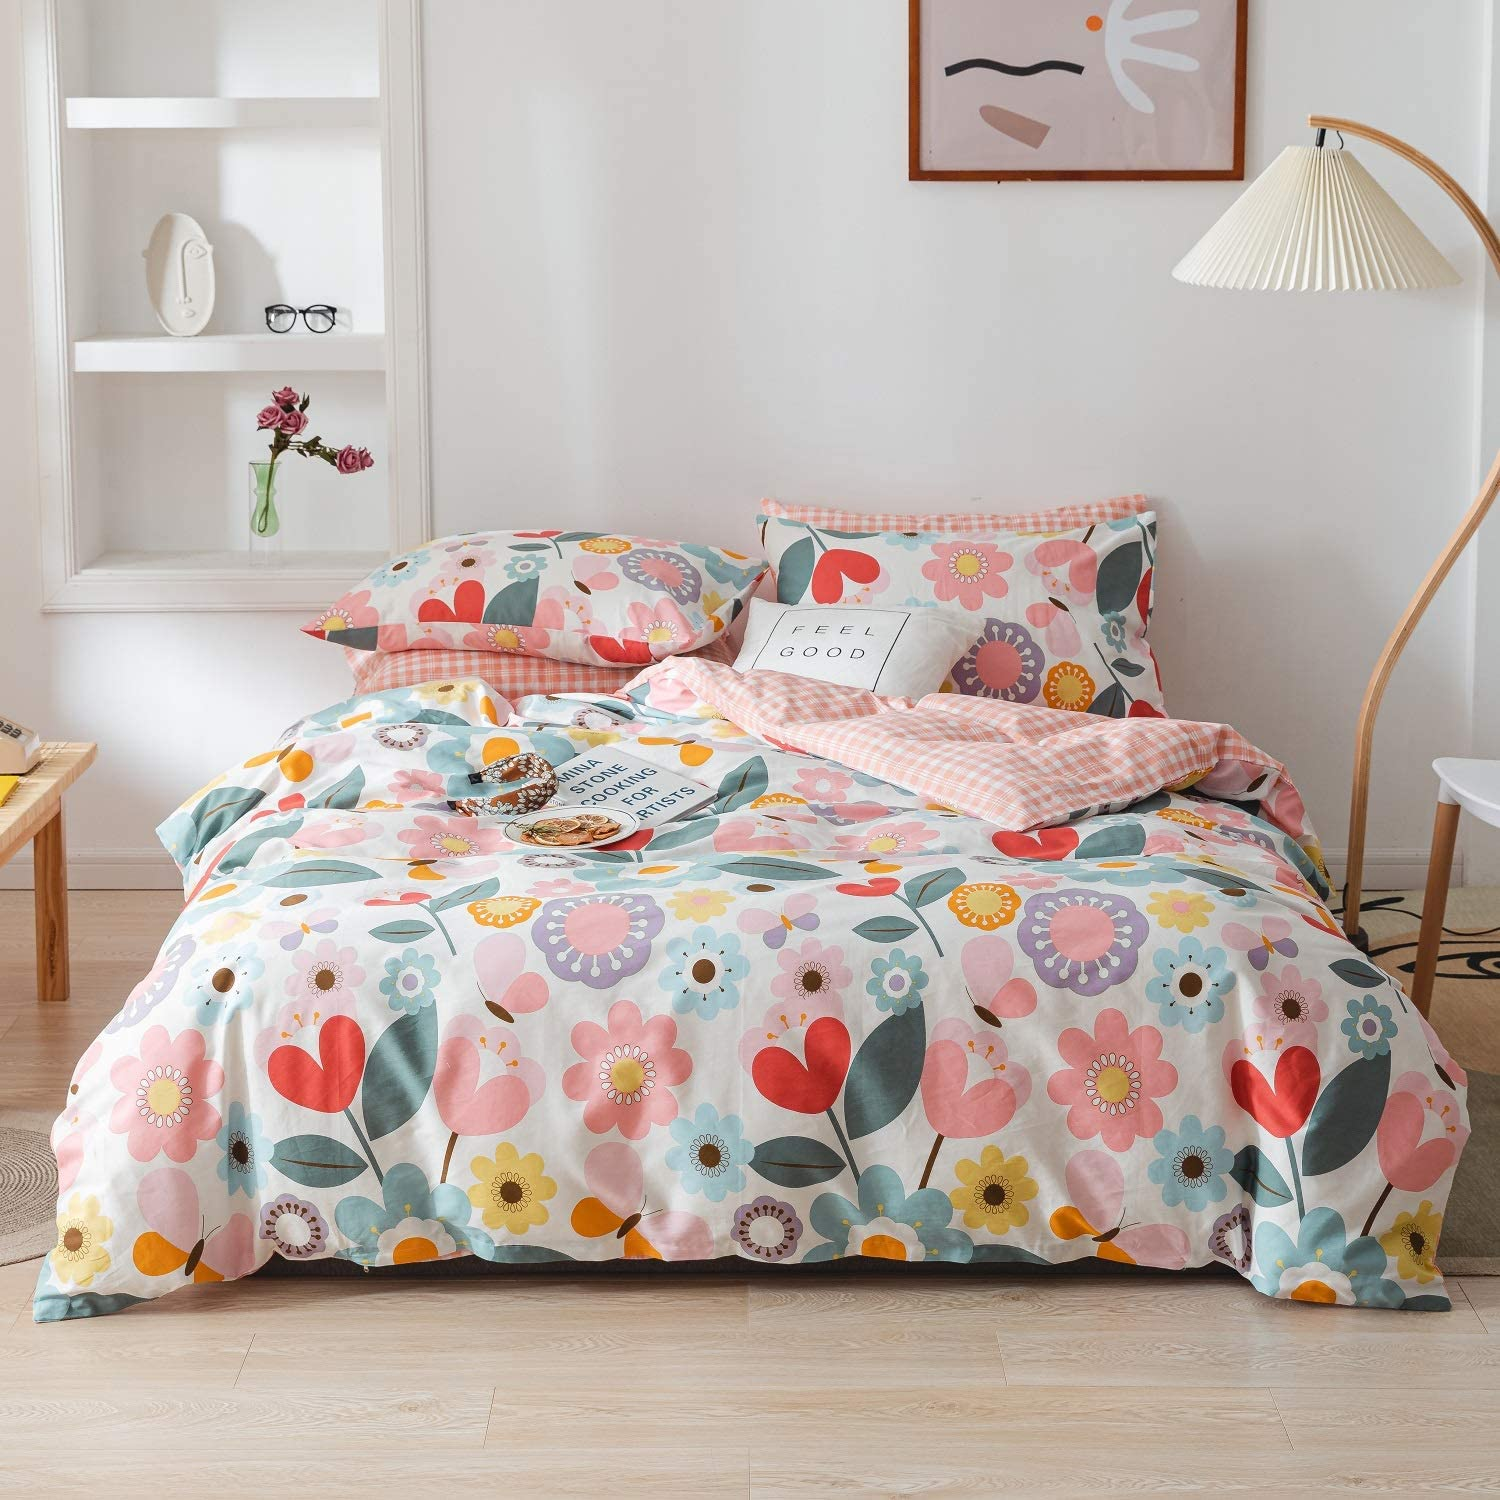 Floral Duvet Cover 100% Cotton 3 pcs Bedding Oklahoma City Mall Recommended Twin fo Set